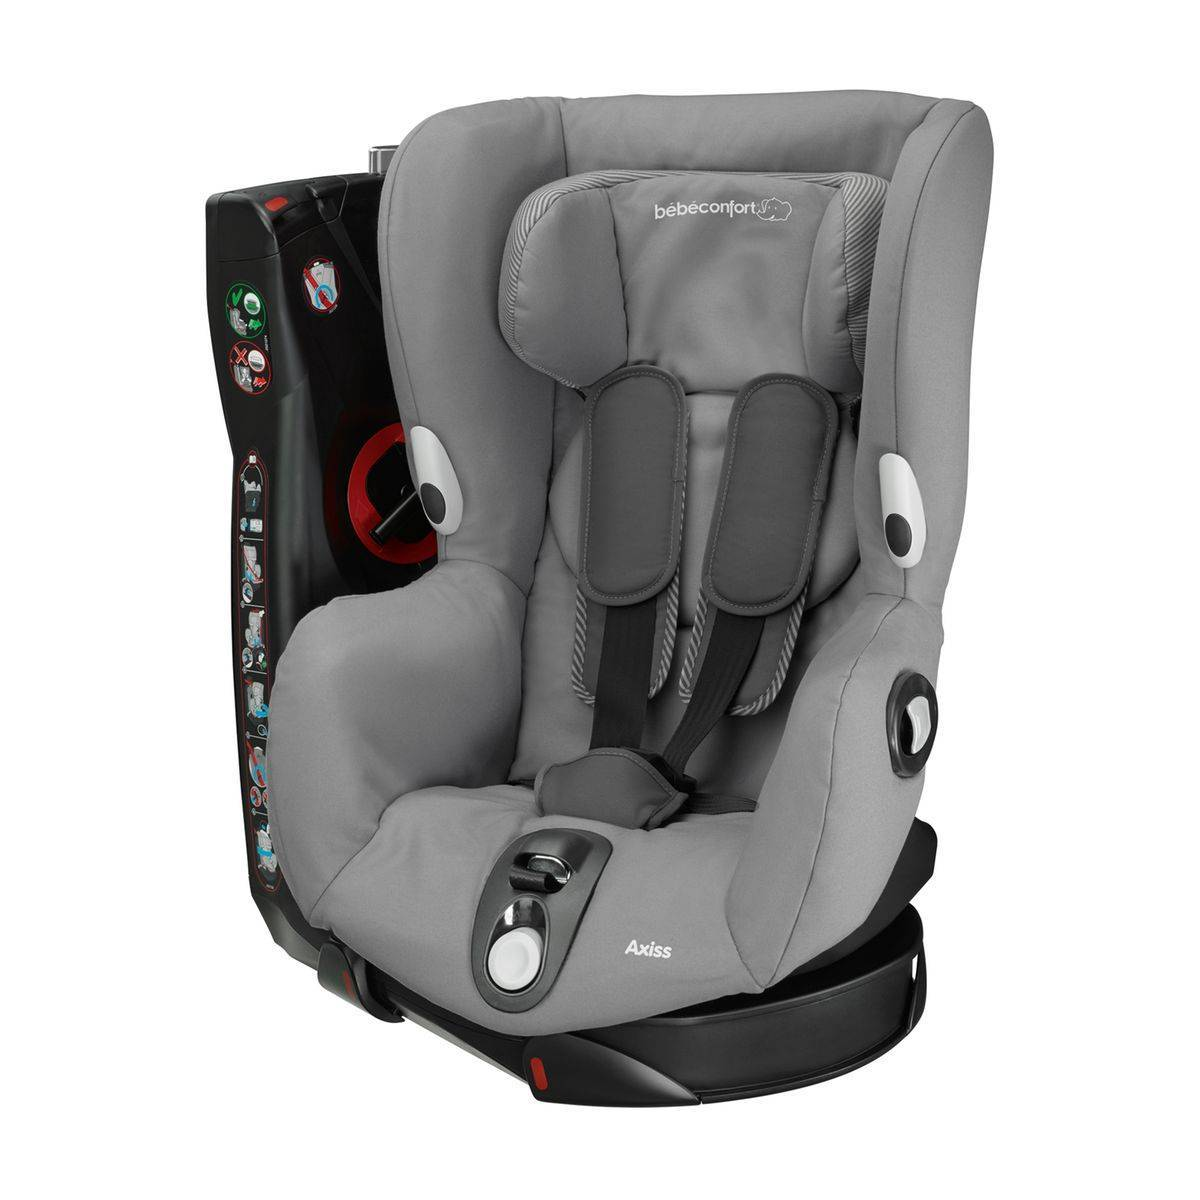 BEBE CONFORT Siège Auto Axiss col. gris Groupe1 - BEBE CONFORT